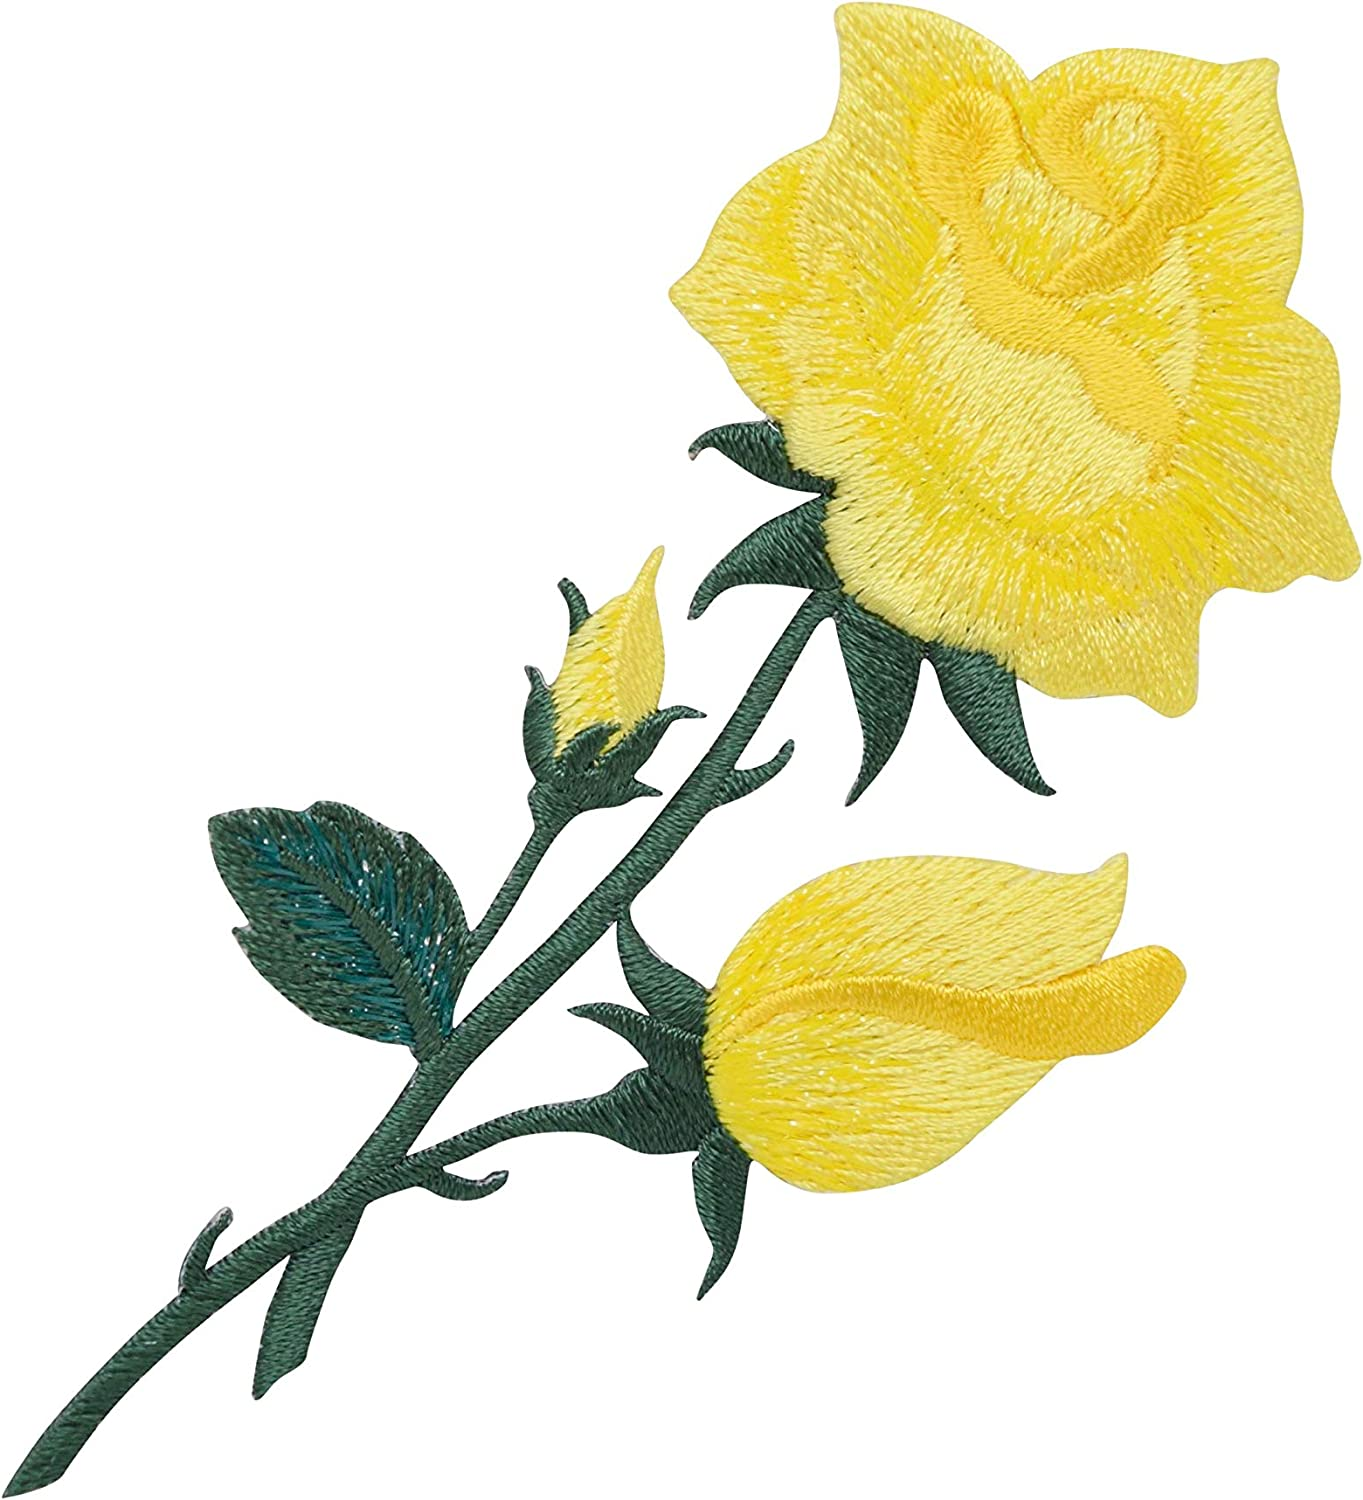 YELLOW ROSE FLOWER TATTOO EMBROIDERED CLOTH SEW IRON ON PATCH BADGE JACKET BAG